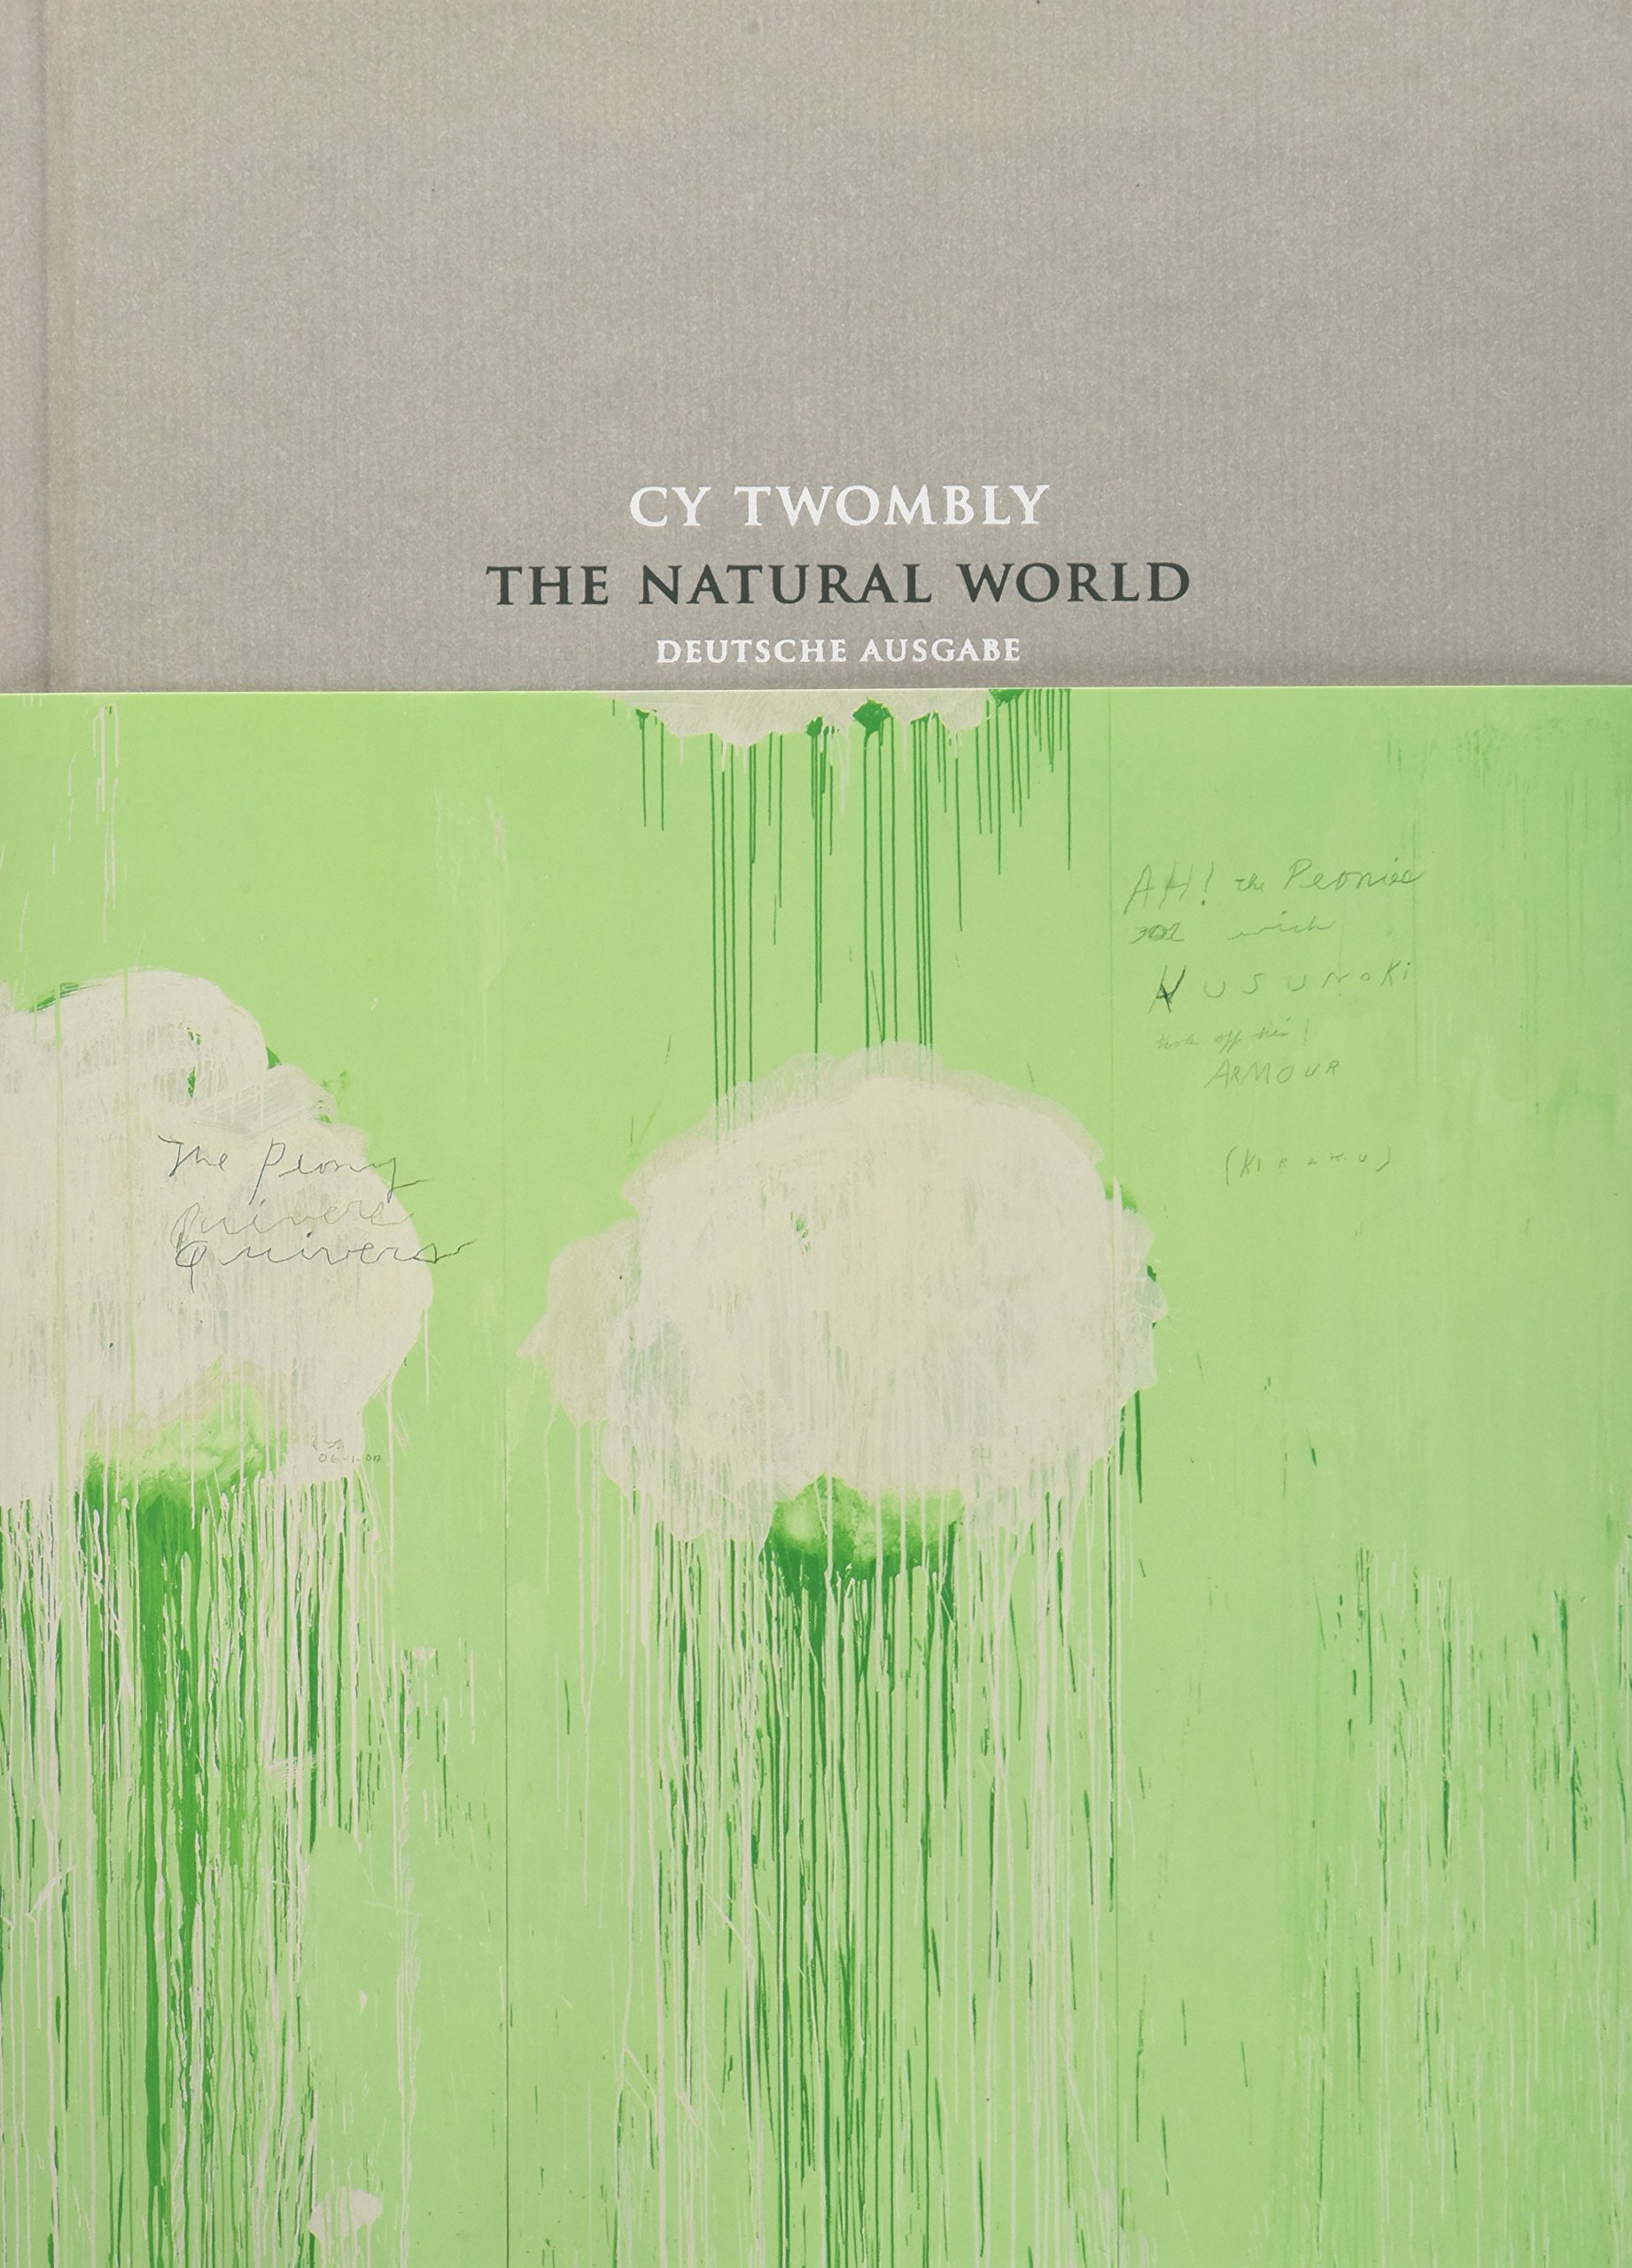 cy-twombly-the-natural-world-selected-works-2000-2007